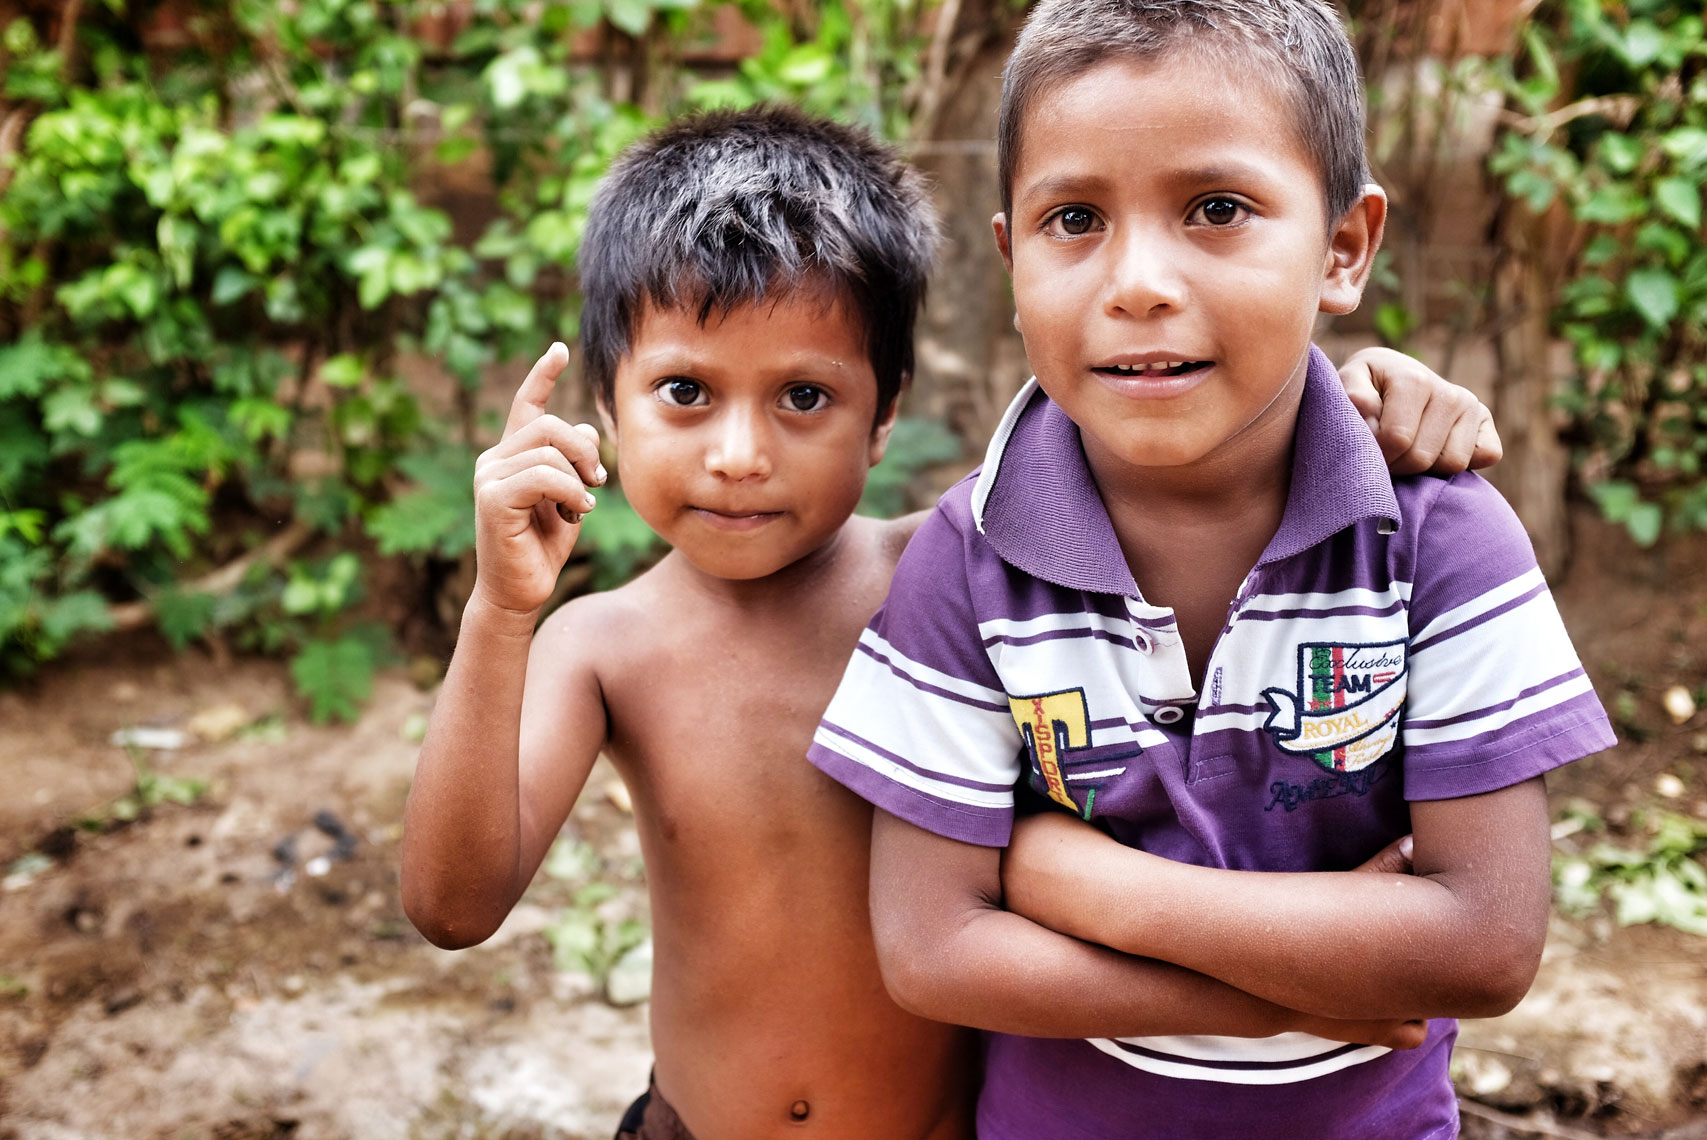 The beautiful children of Granada, Nicaragua